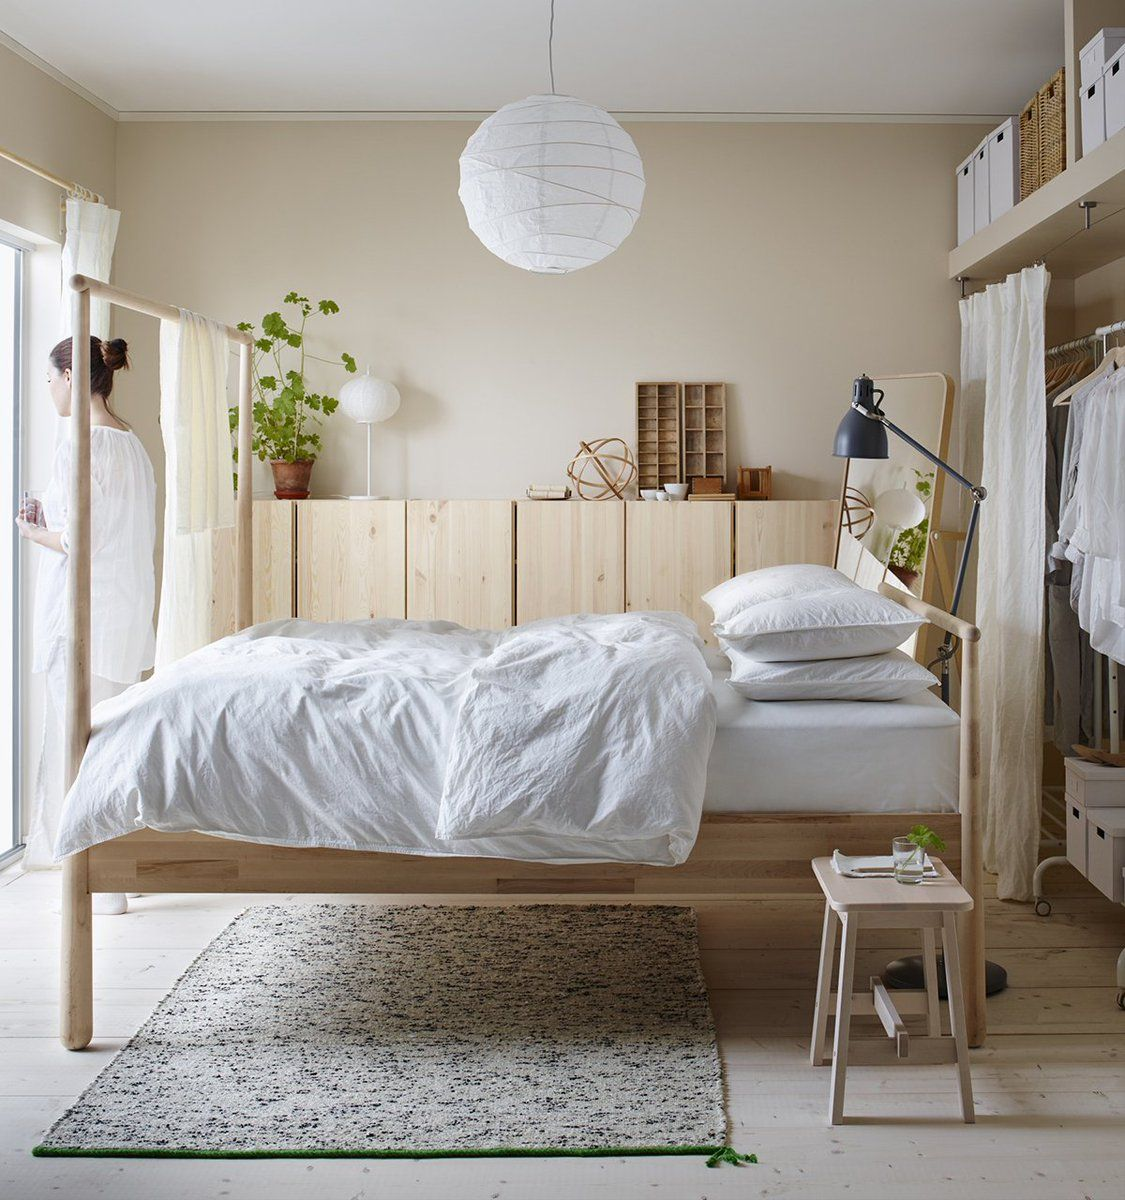 Embedded | For the Home | Pinterest | Wohnen